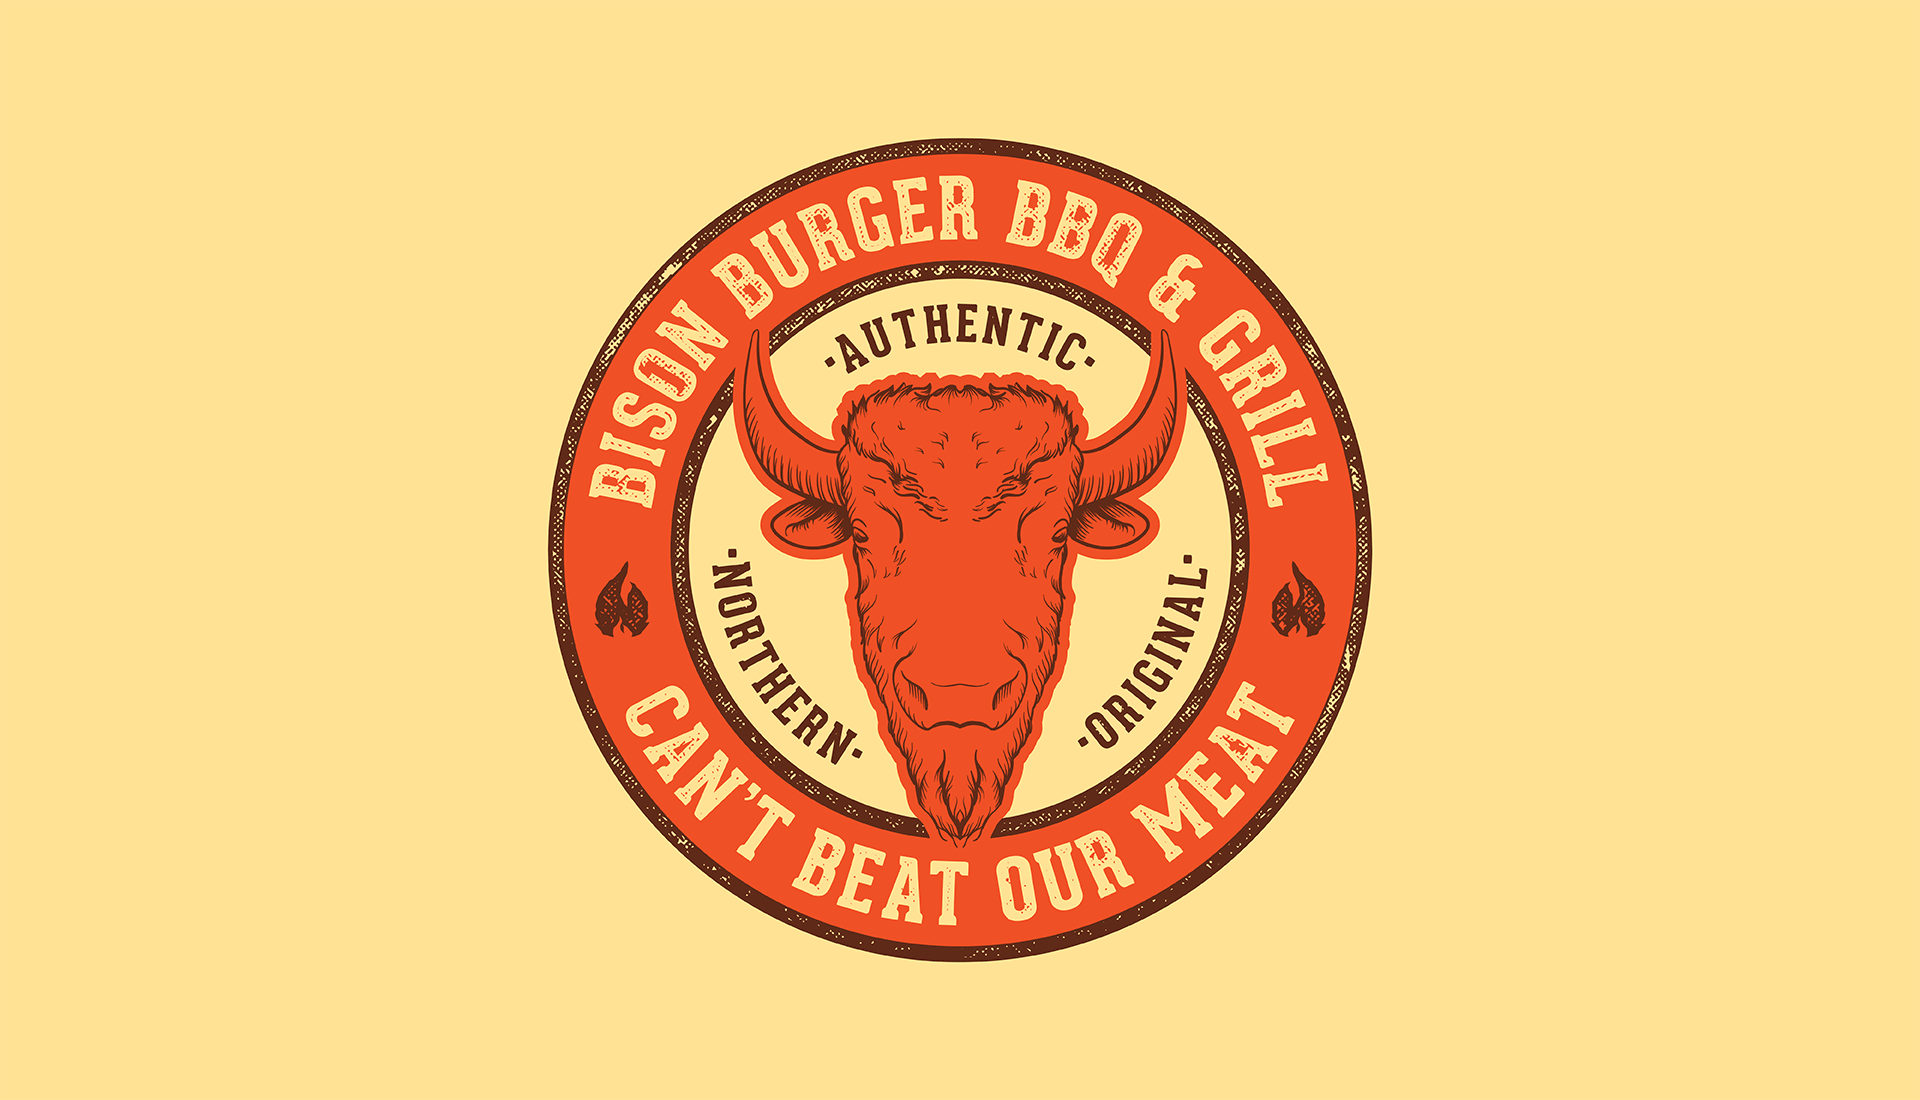 Bison Burger BBQ & Grill | Primary Badge, Authentic Northern Original, Can't Beat Our Meat